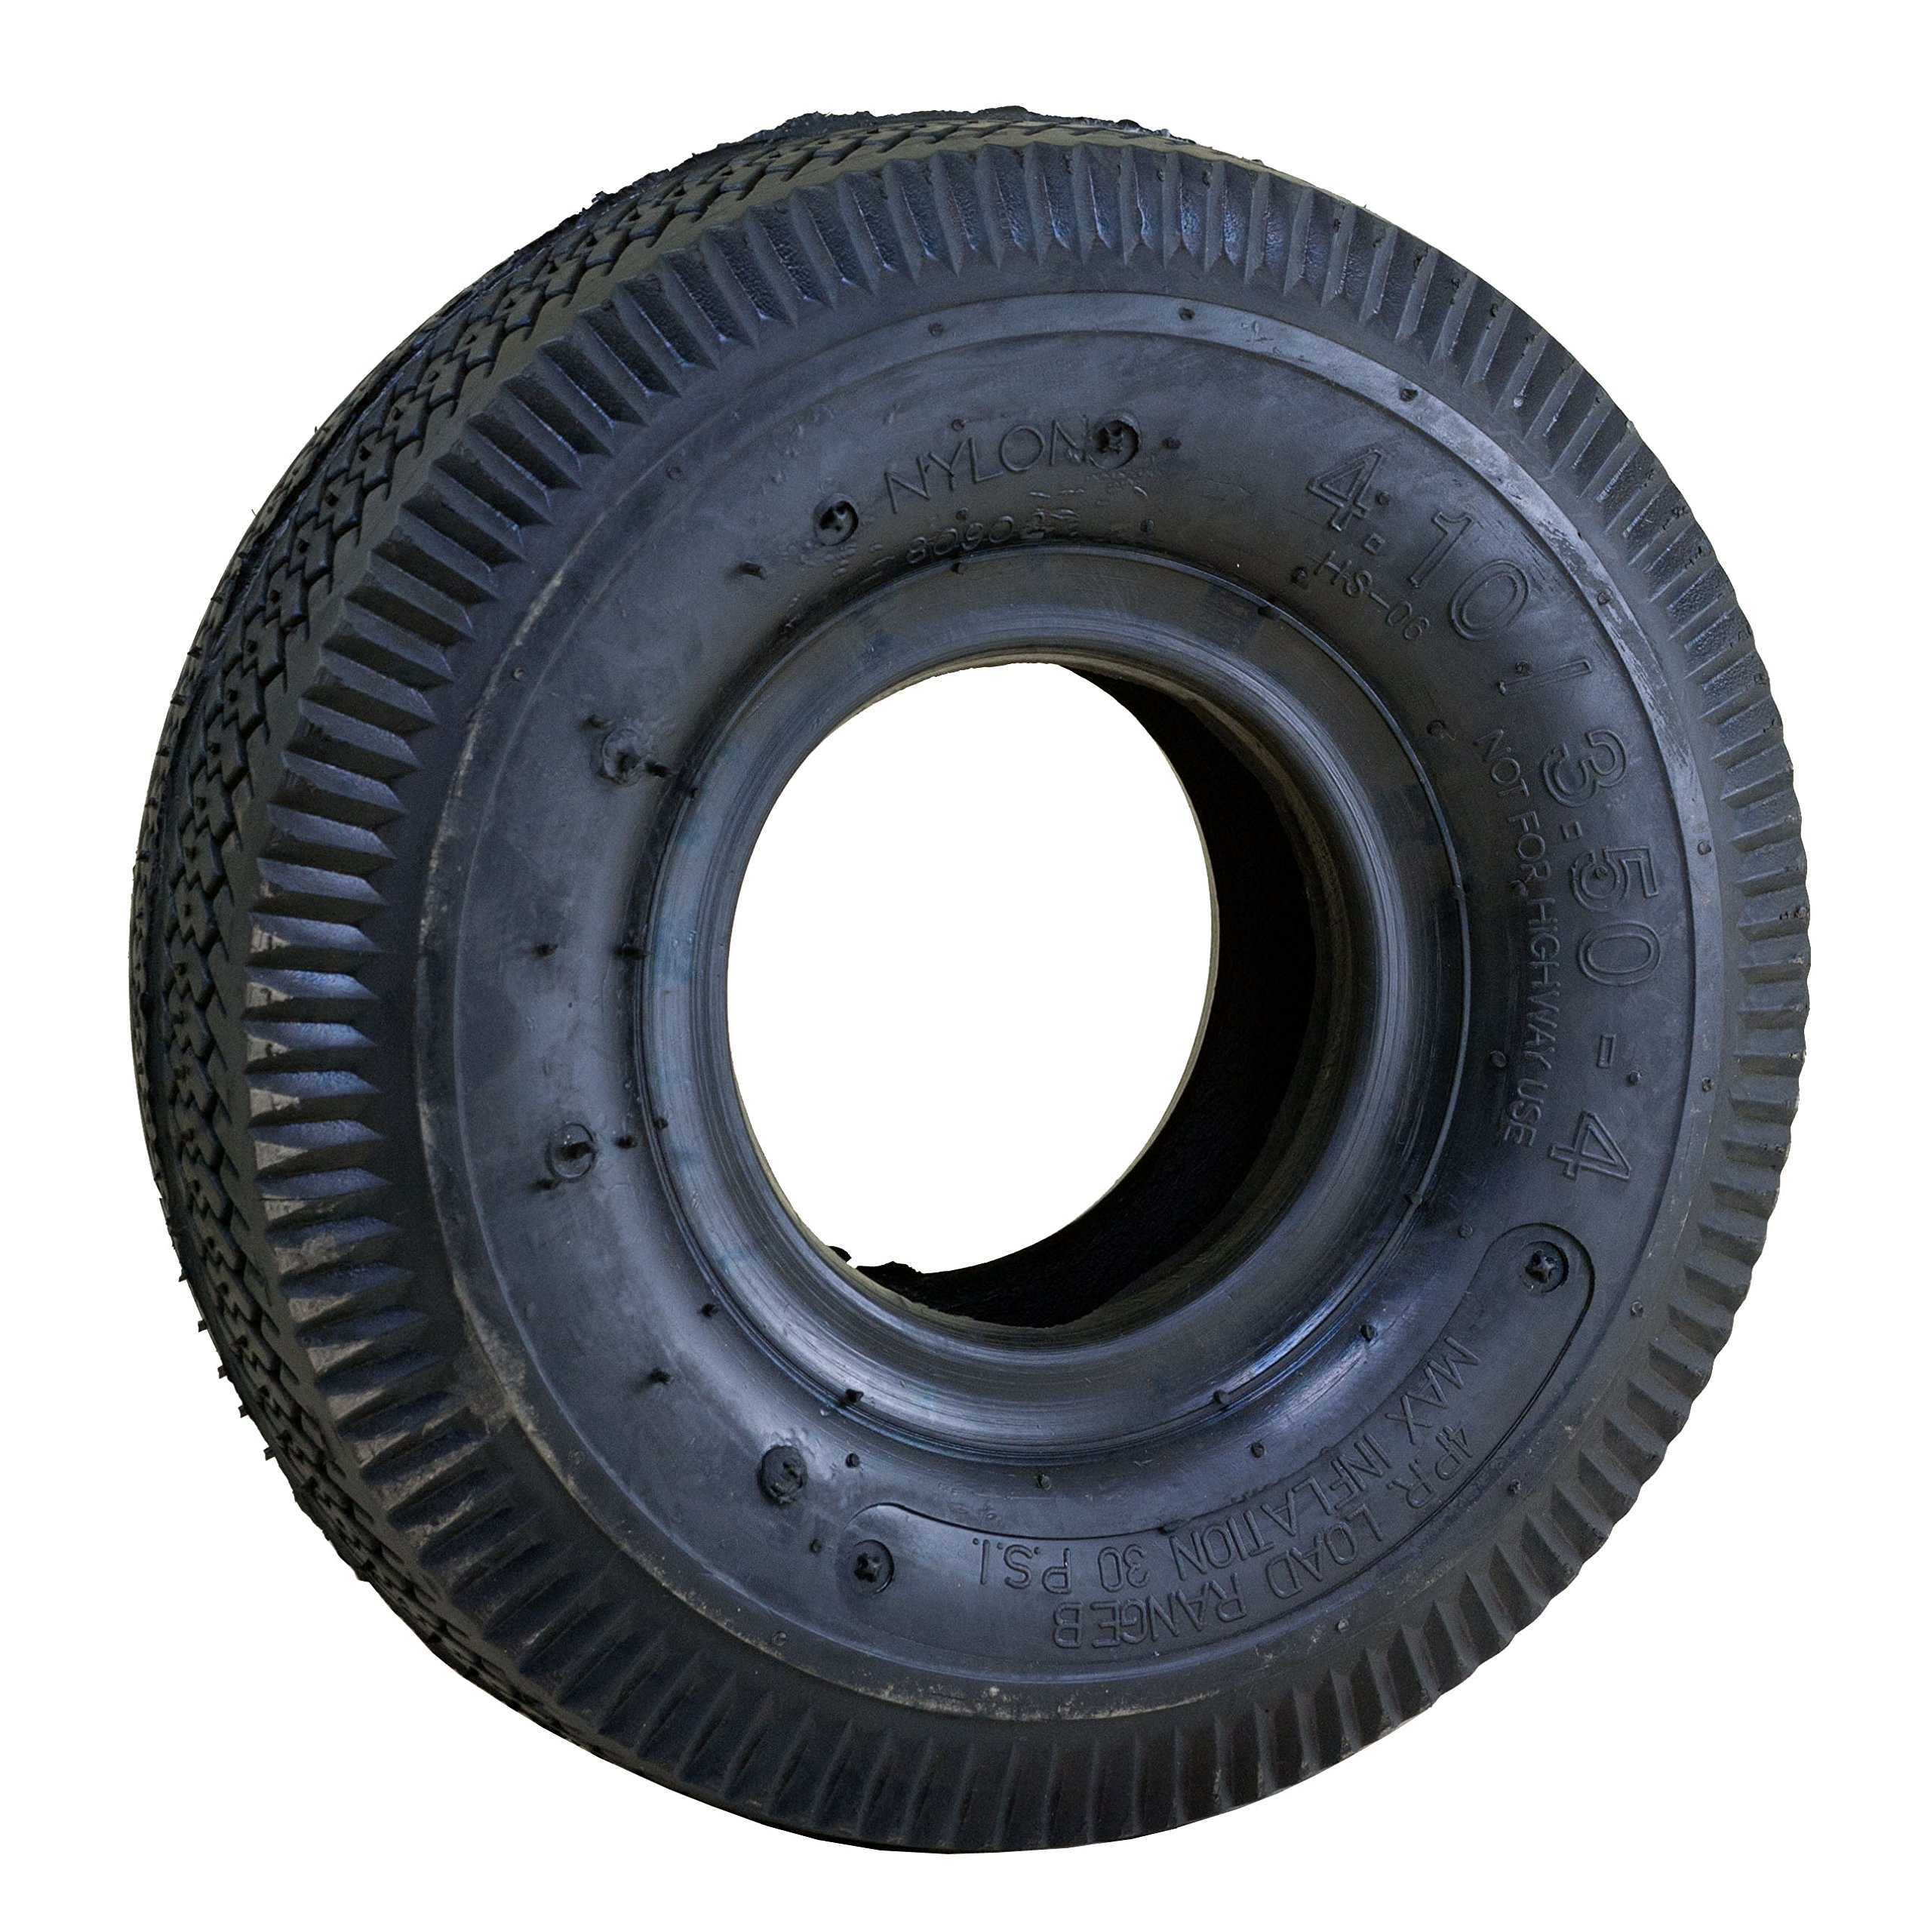 Marathon 4.10/3.50-4'' Pneumatic (Air Filled) Hand Truck/All Purpose Utility Tire and Inner Tube